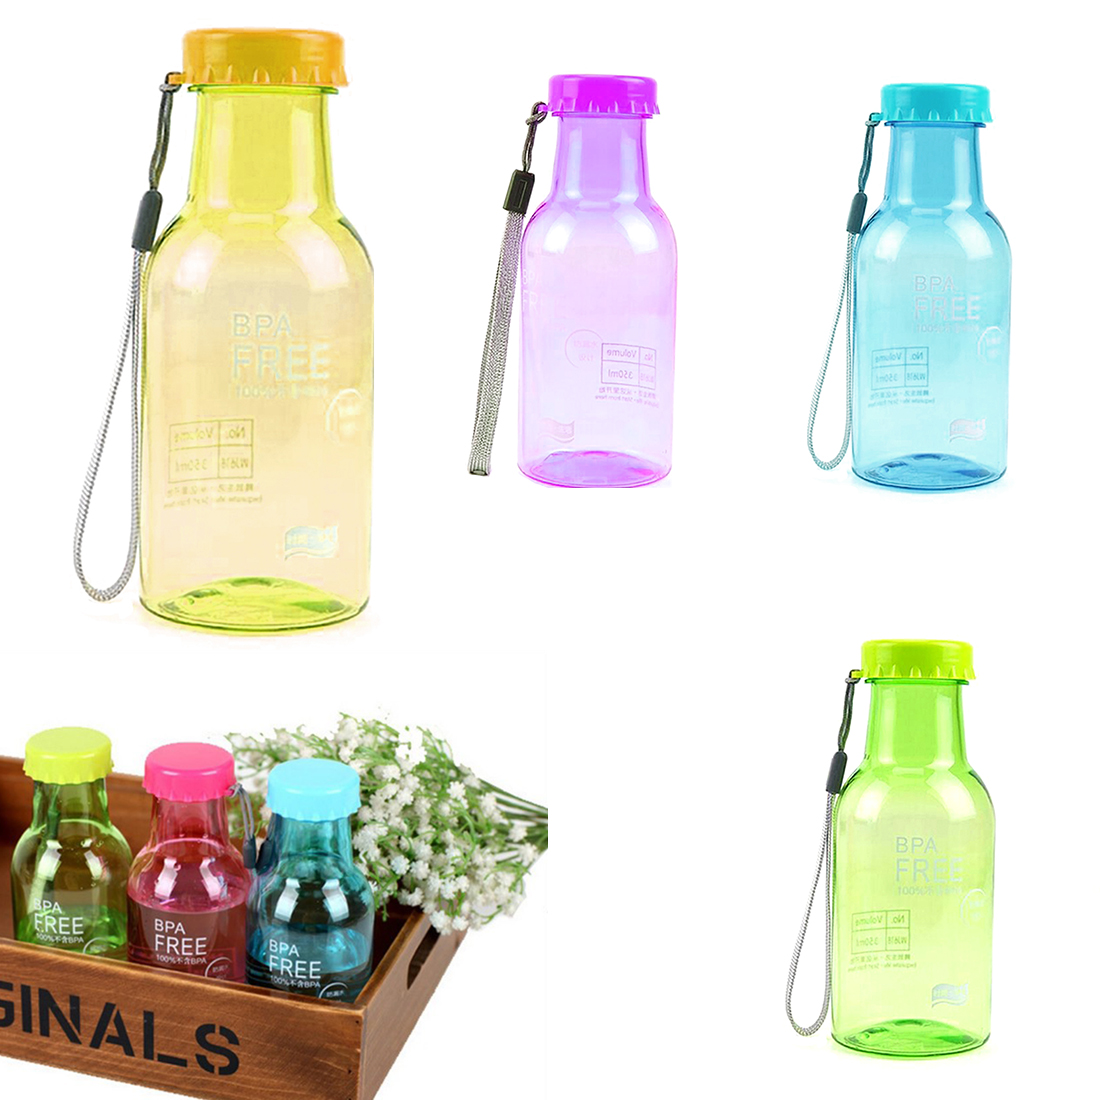 High Quality 350ML <font><b>Portable</b></font> Unbreakable <font><b>Plastic</b></font> <font><b>Water</b></font> bottle Outdoor Camping Biking Sports <font><b>Leak</b></font> <font><b>proof</b></font> Bottles